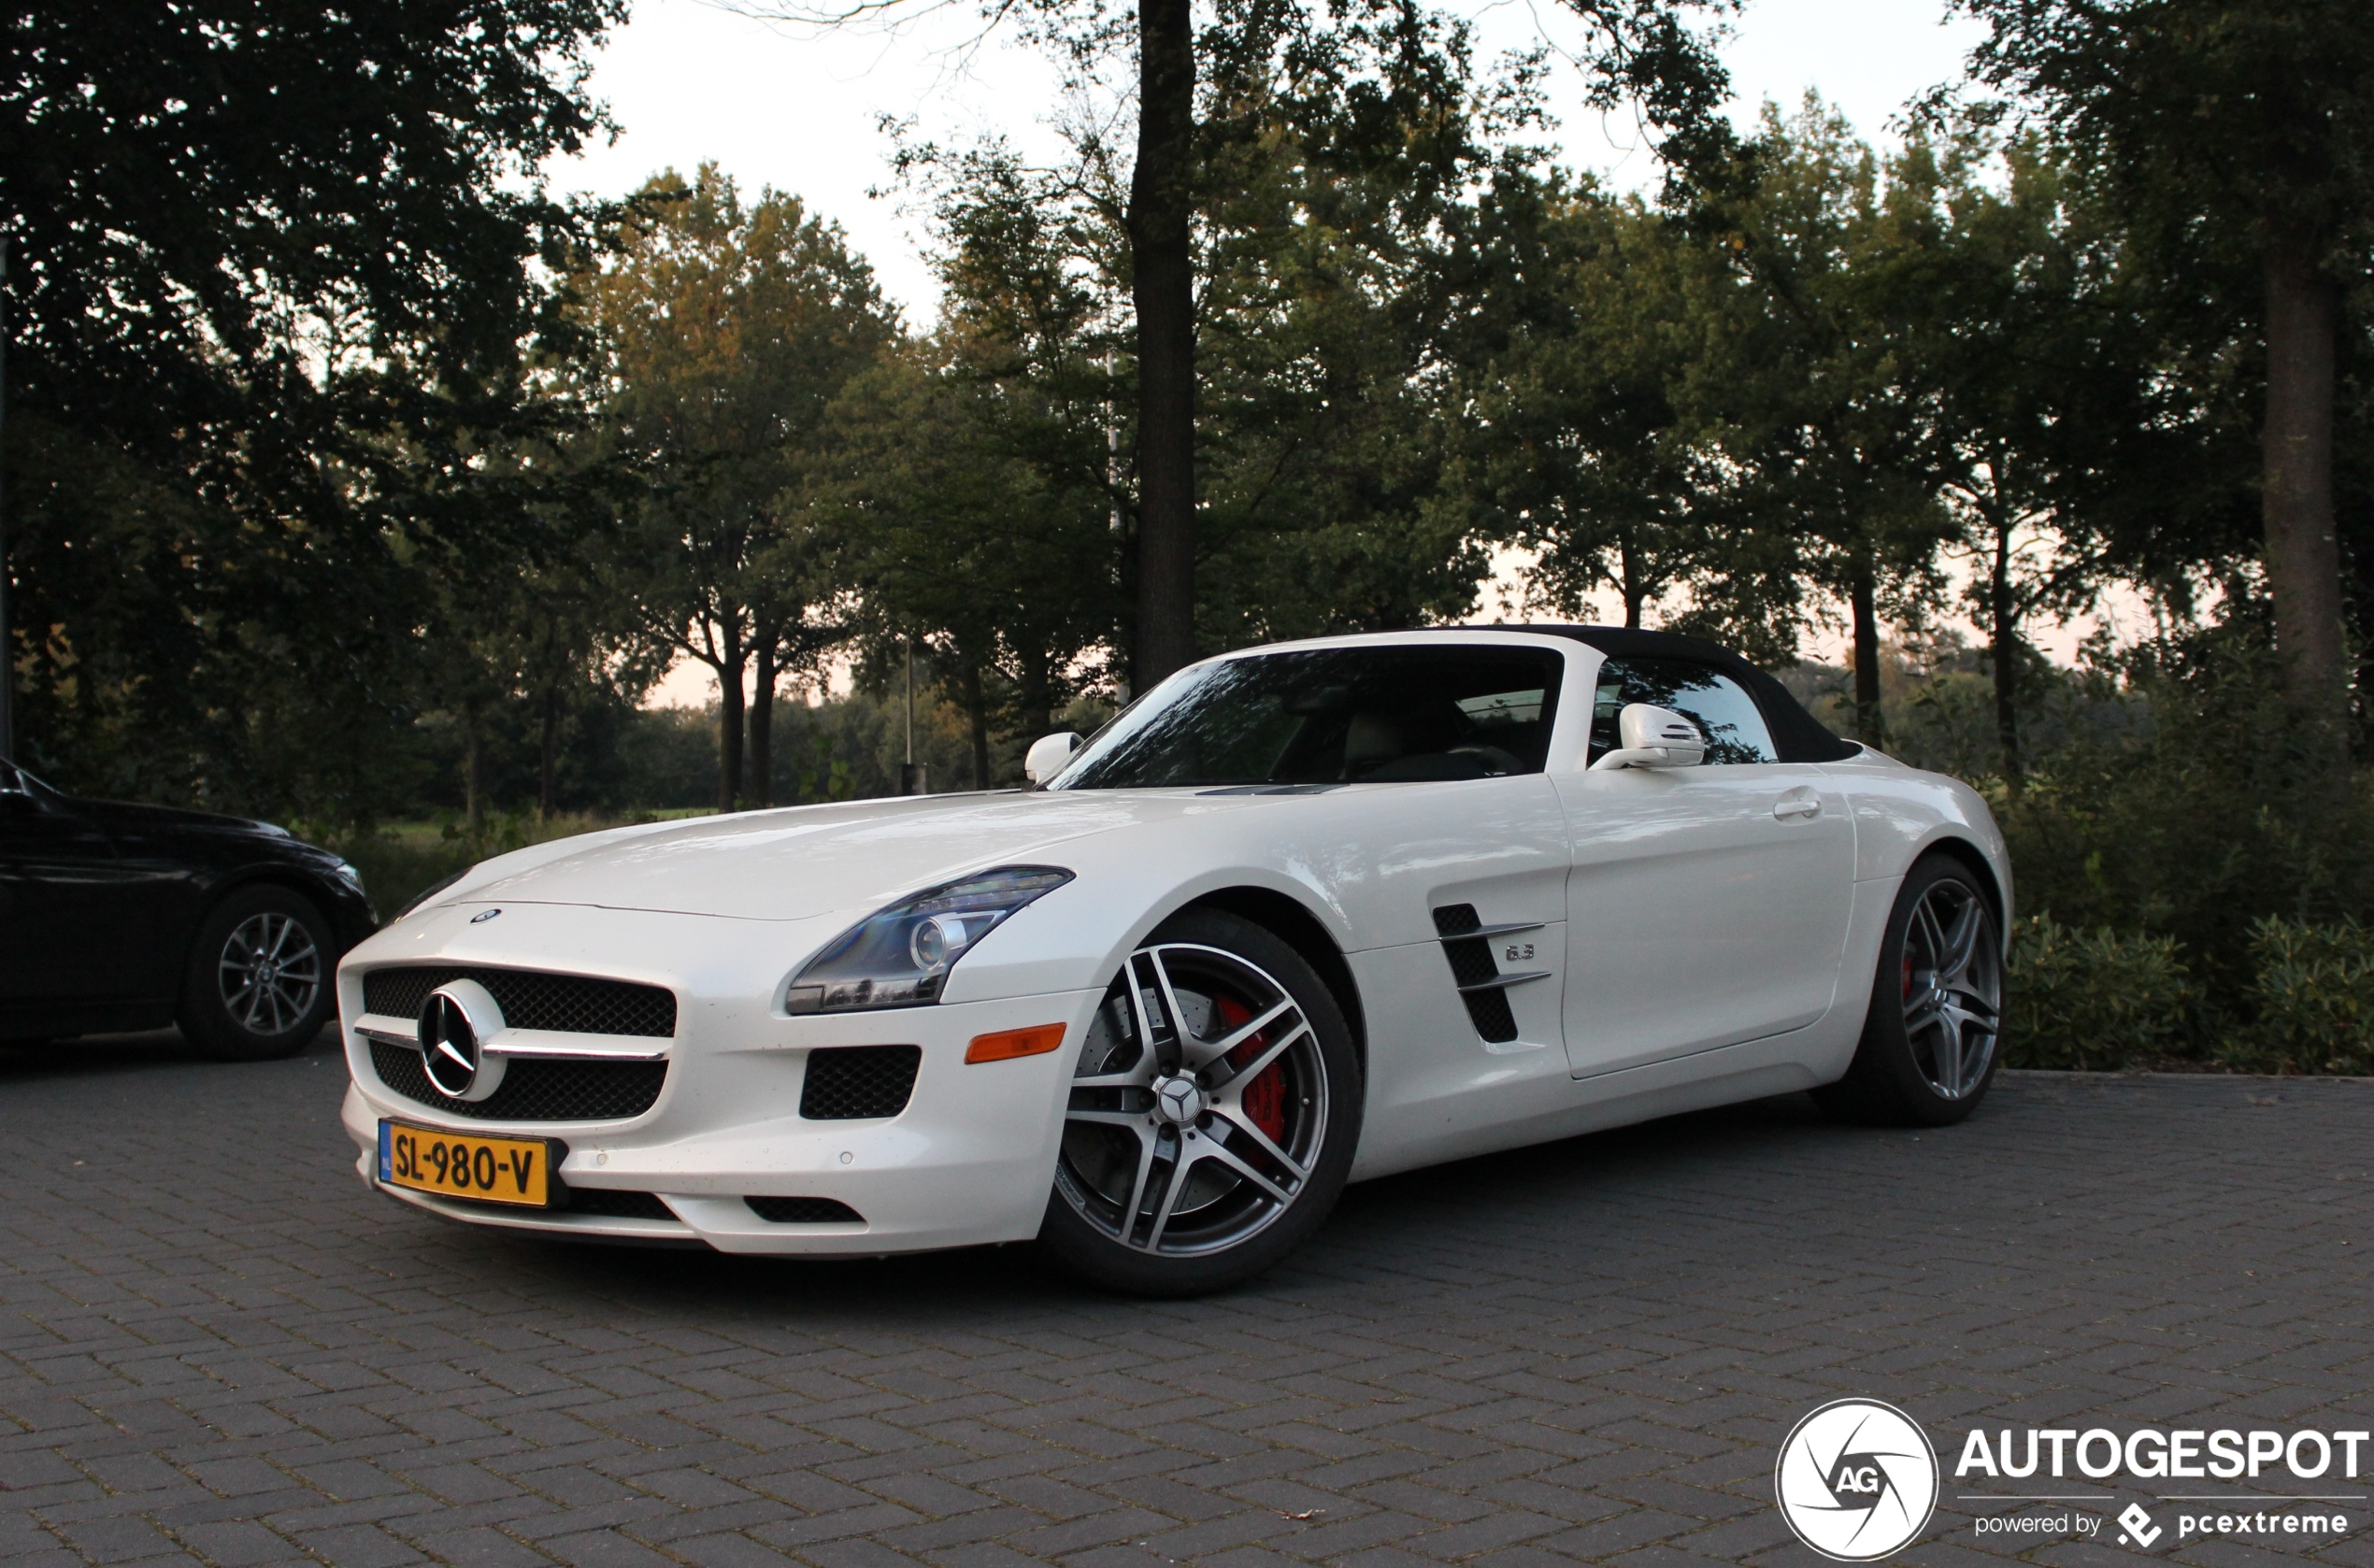 Mercedes-Benz SLS AMG Roadster had last van pleinvrees